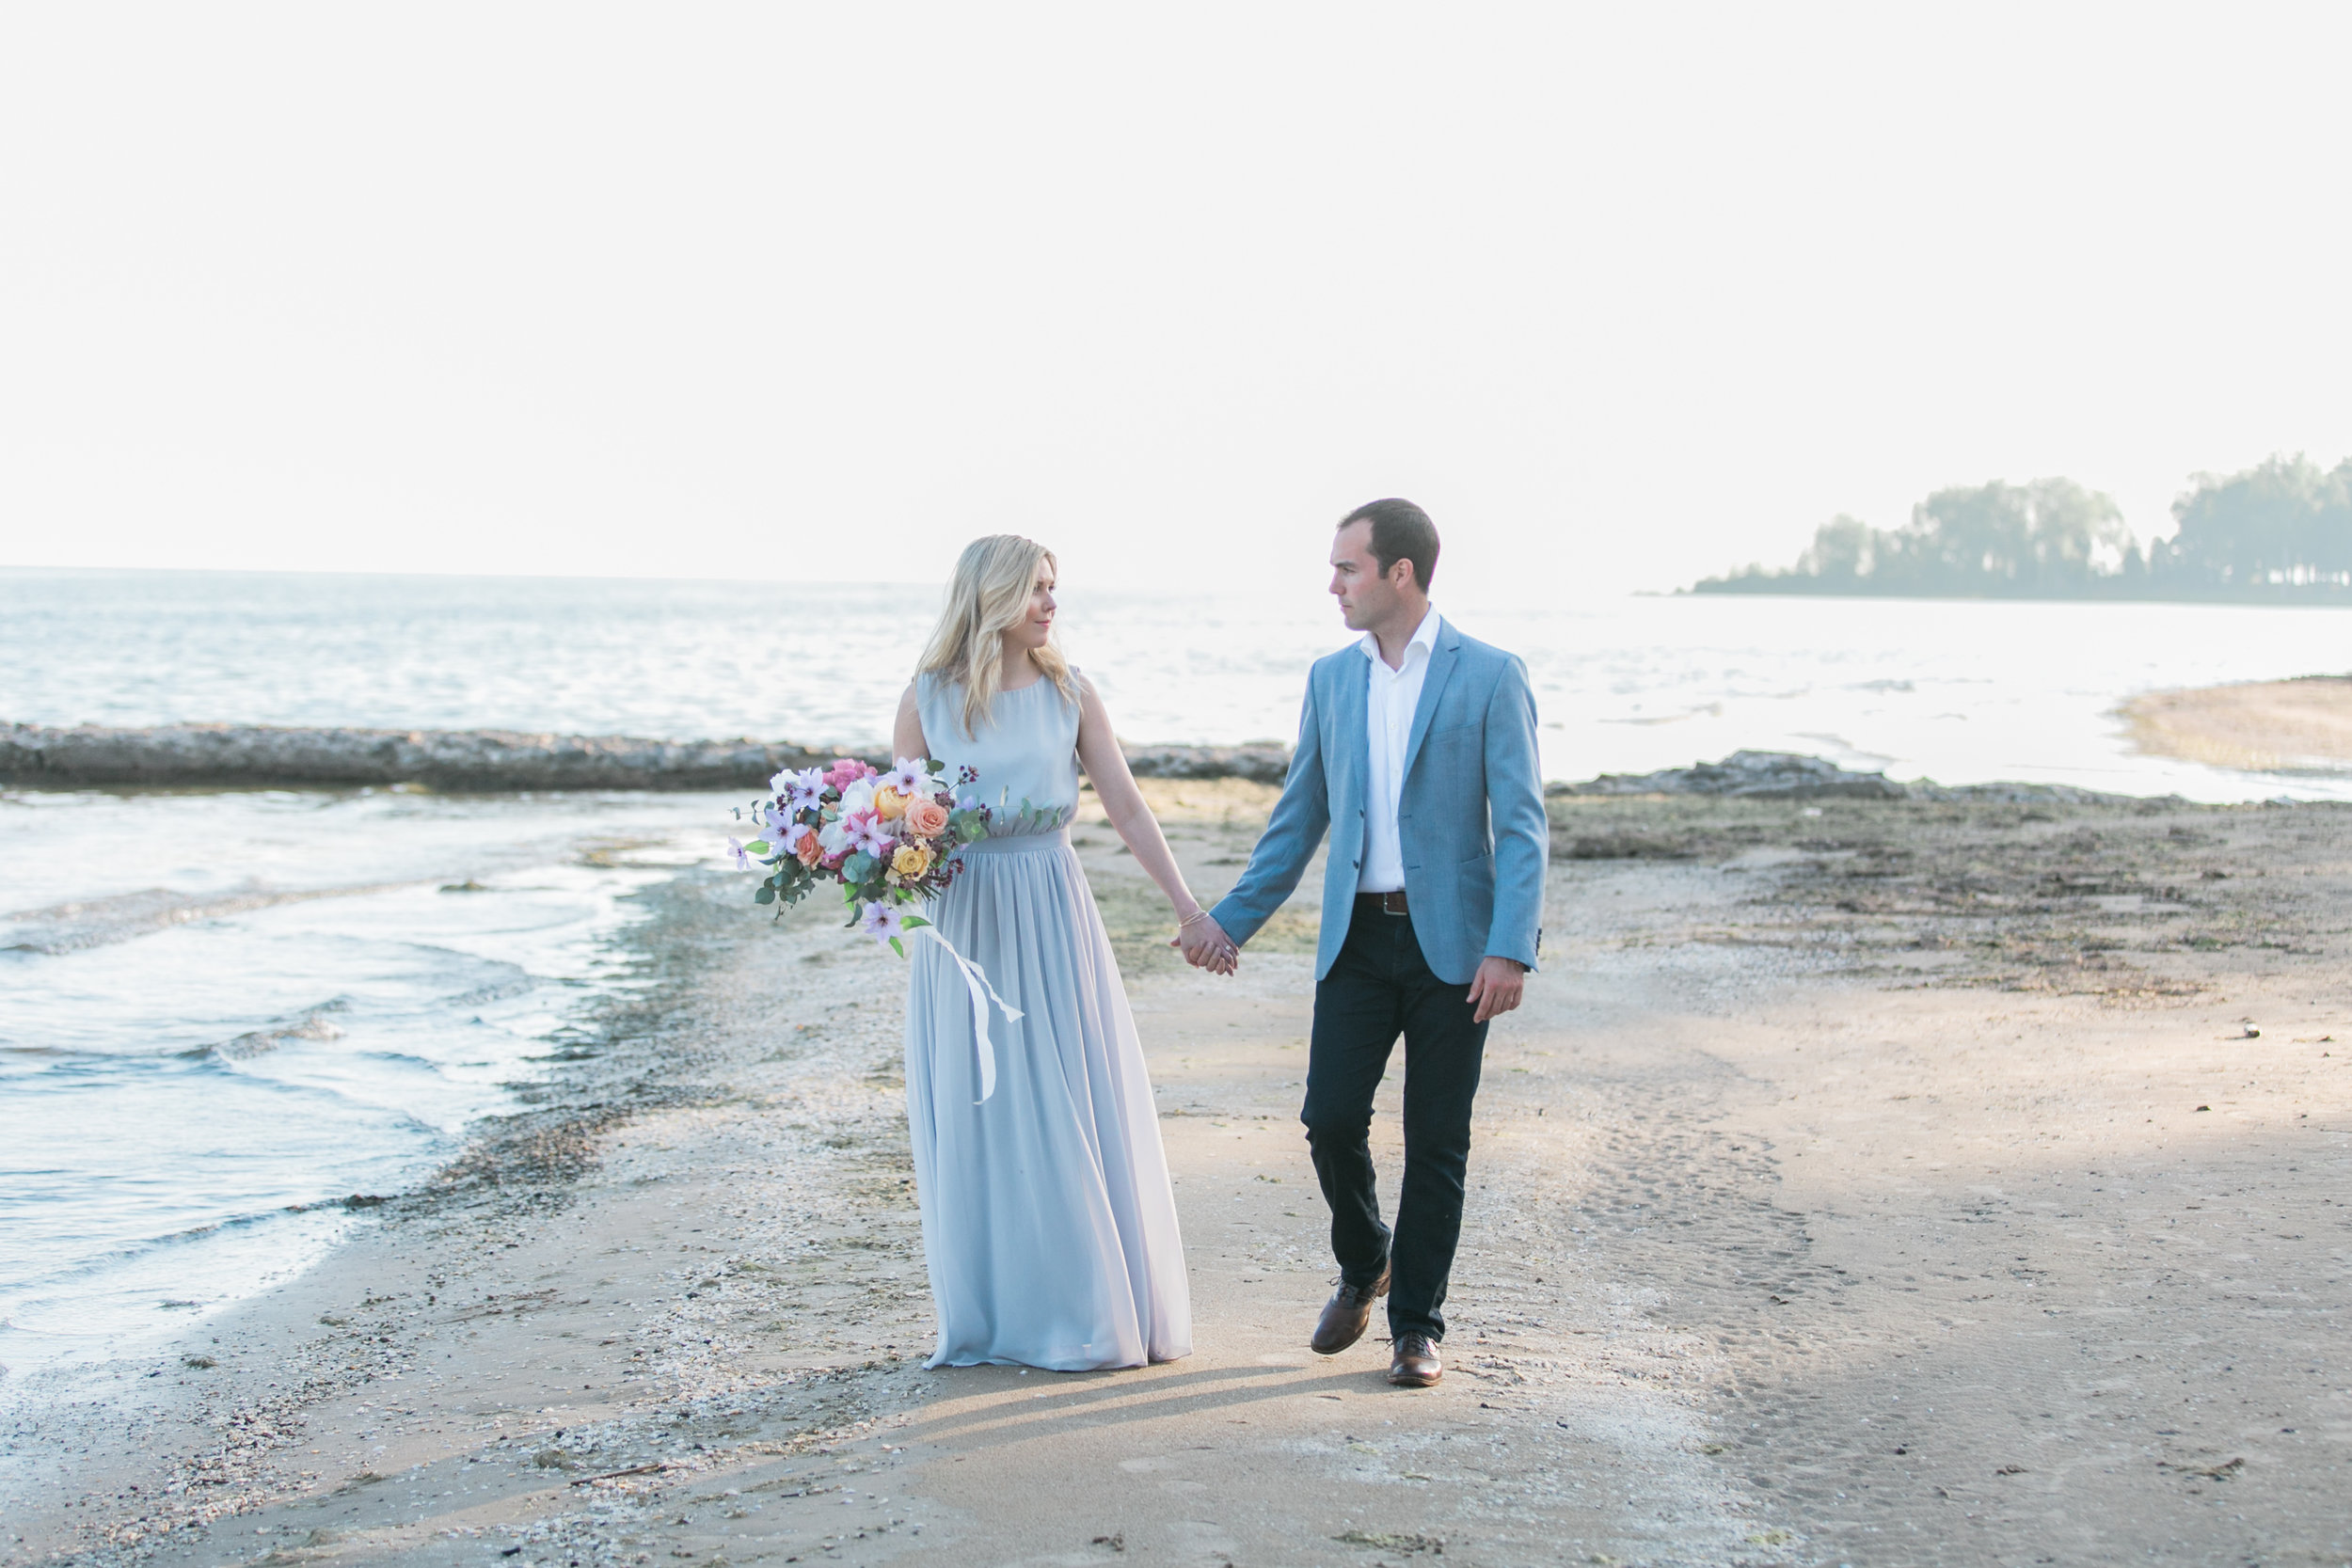 amanda cowley events niagara wedding planner beach engagement session holding hands